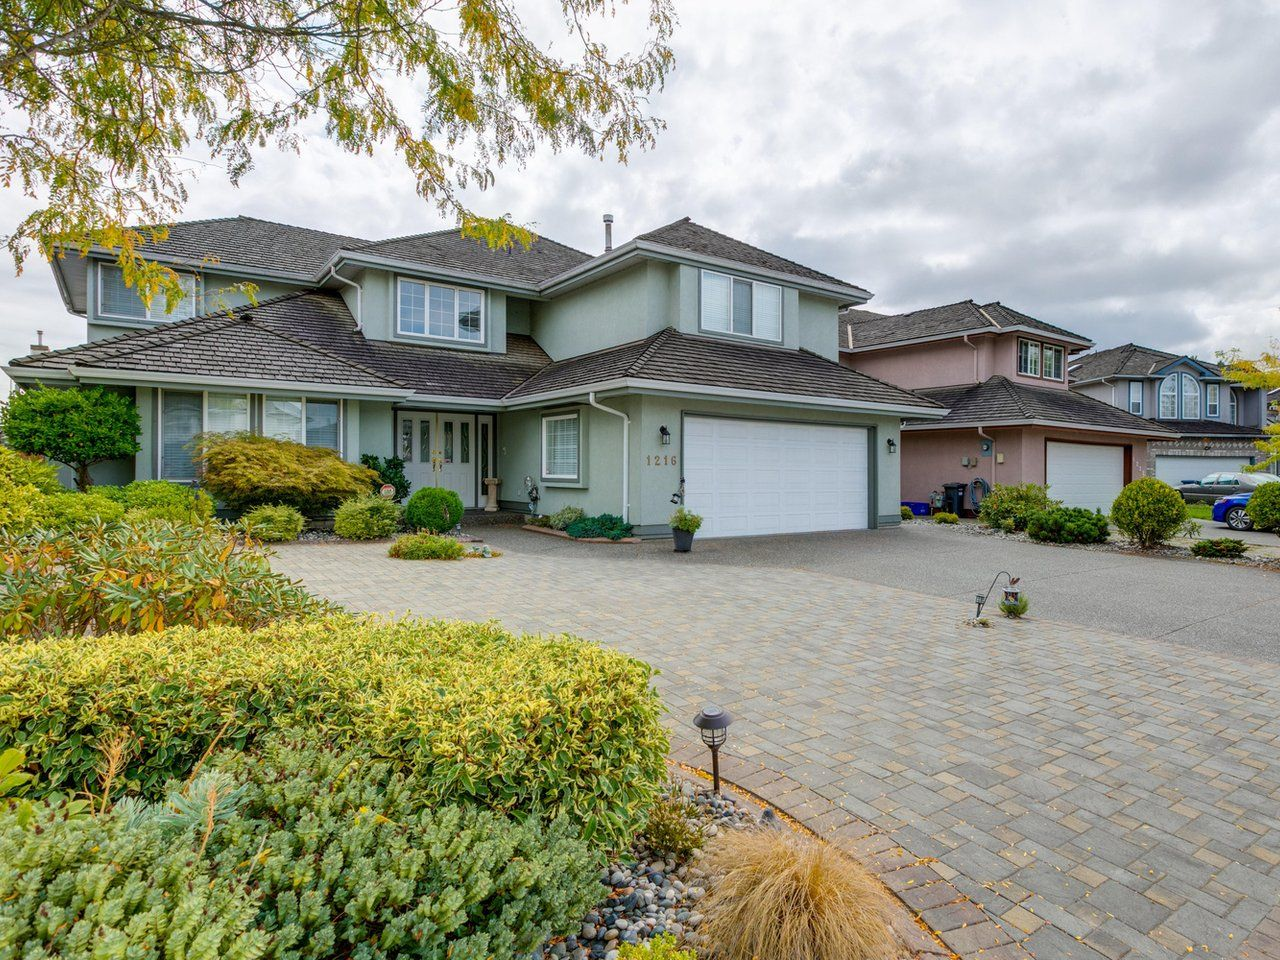 Photo 2: Photos: 1216 PRETTY Court in New Westminster: Queensborough House for sale : MLS®# R2617375